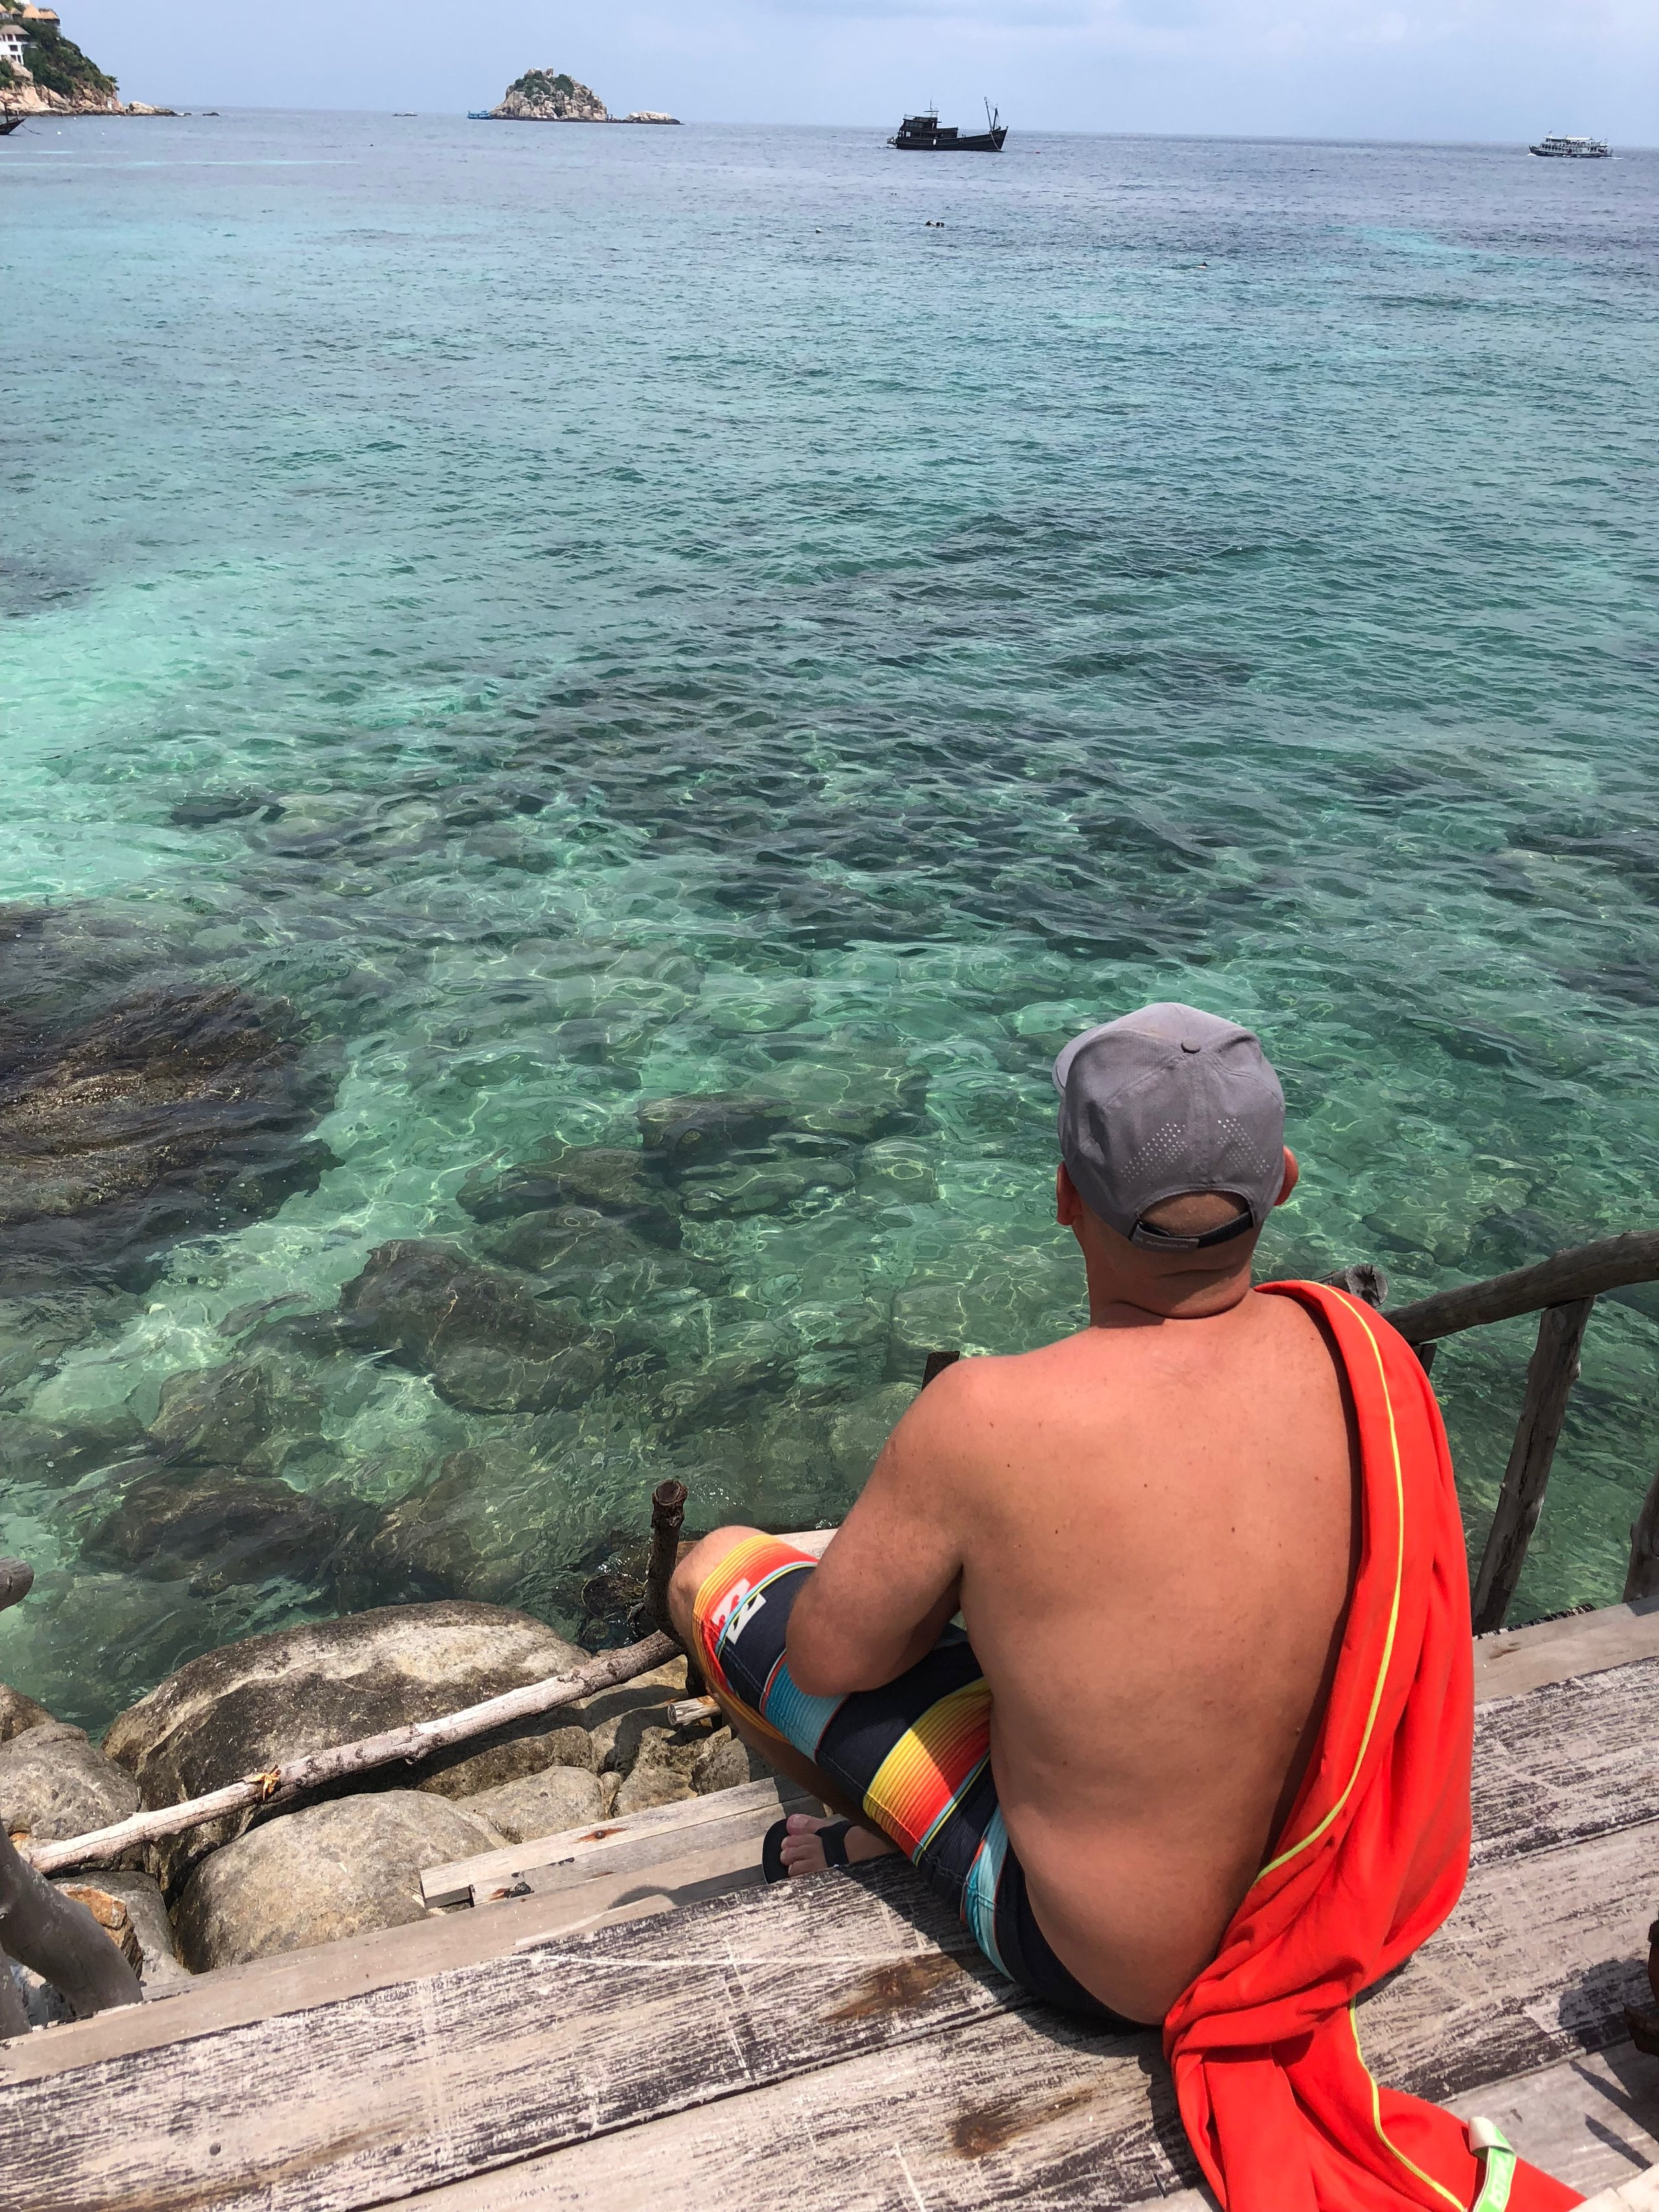 Jerry contemplating life......or the snorkeling....:)